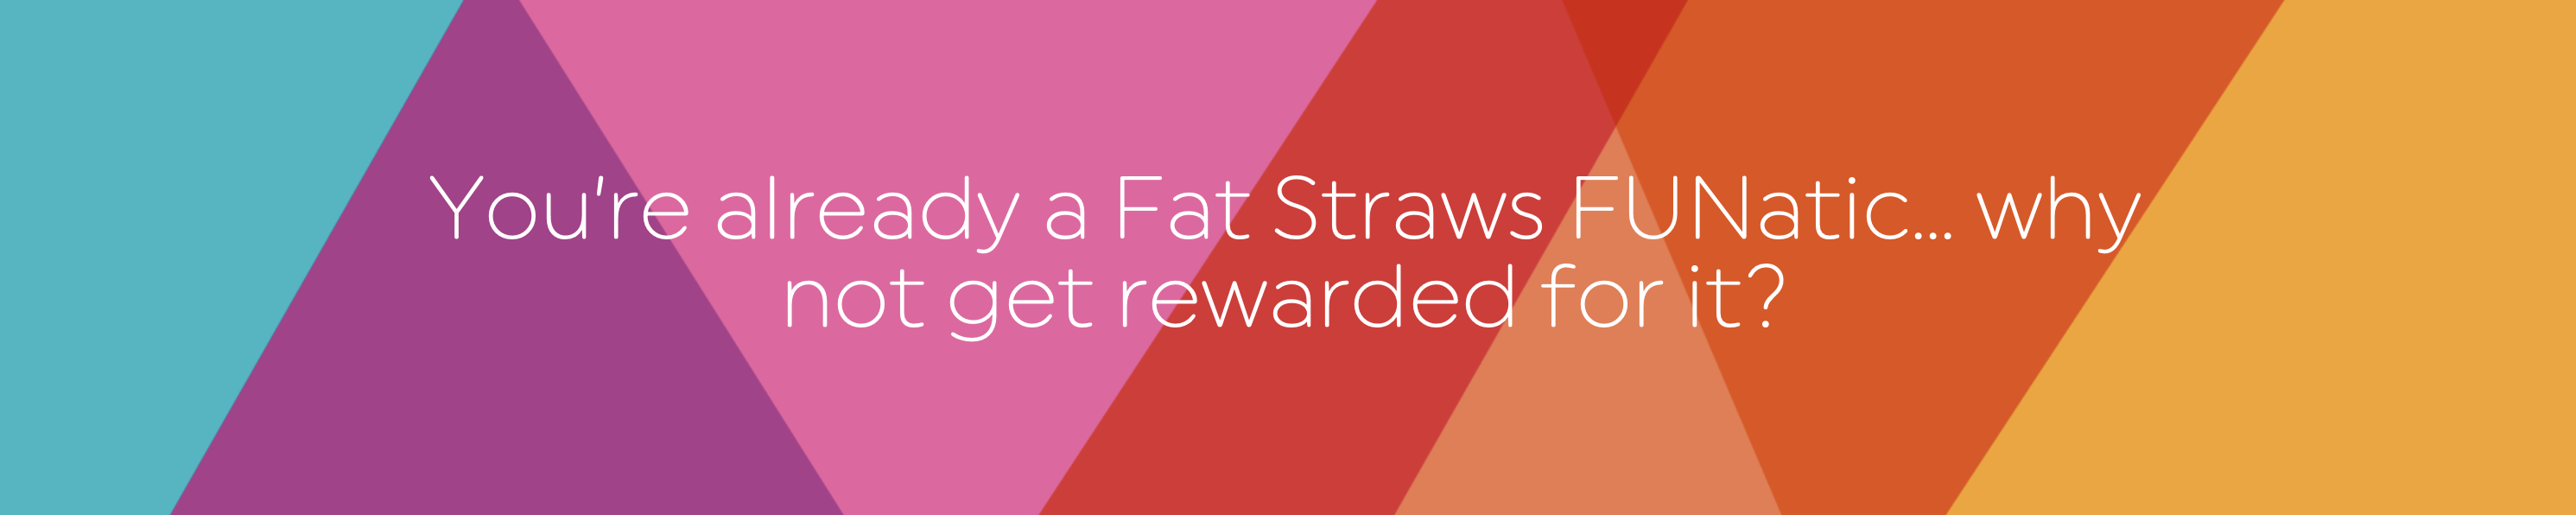 You're already a Fat Straws FUNatic so why not get rewarded for it?